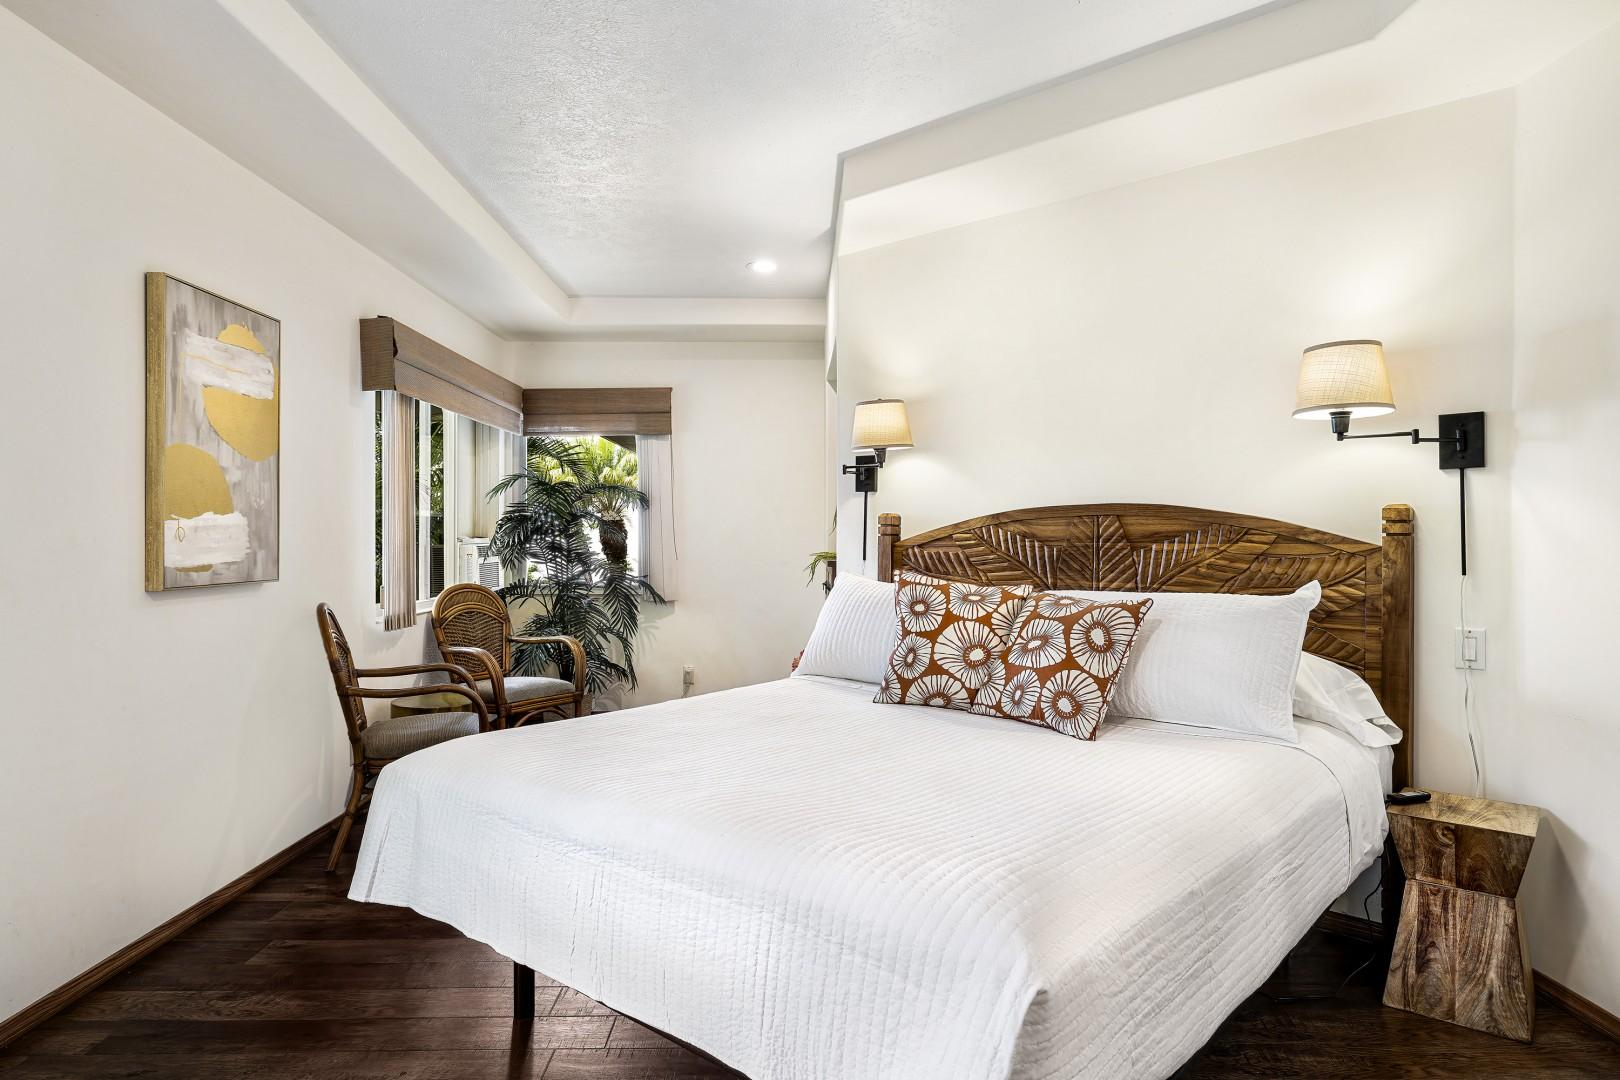 Looking for a same to read a nice book? the Master bedroom has just the place!